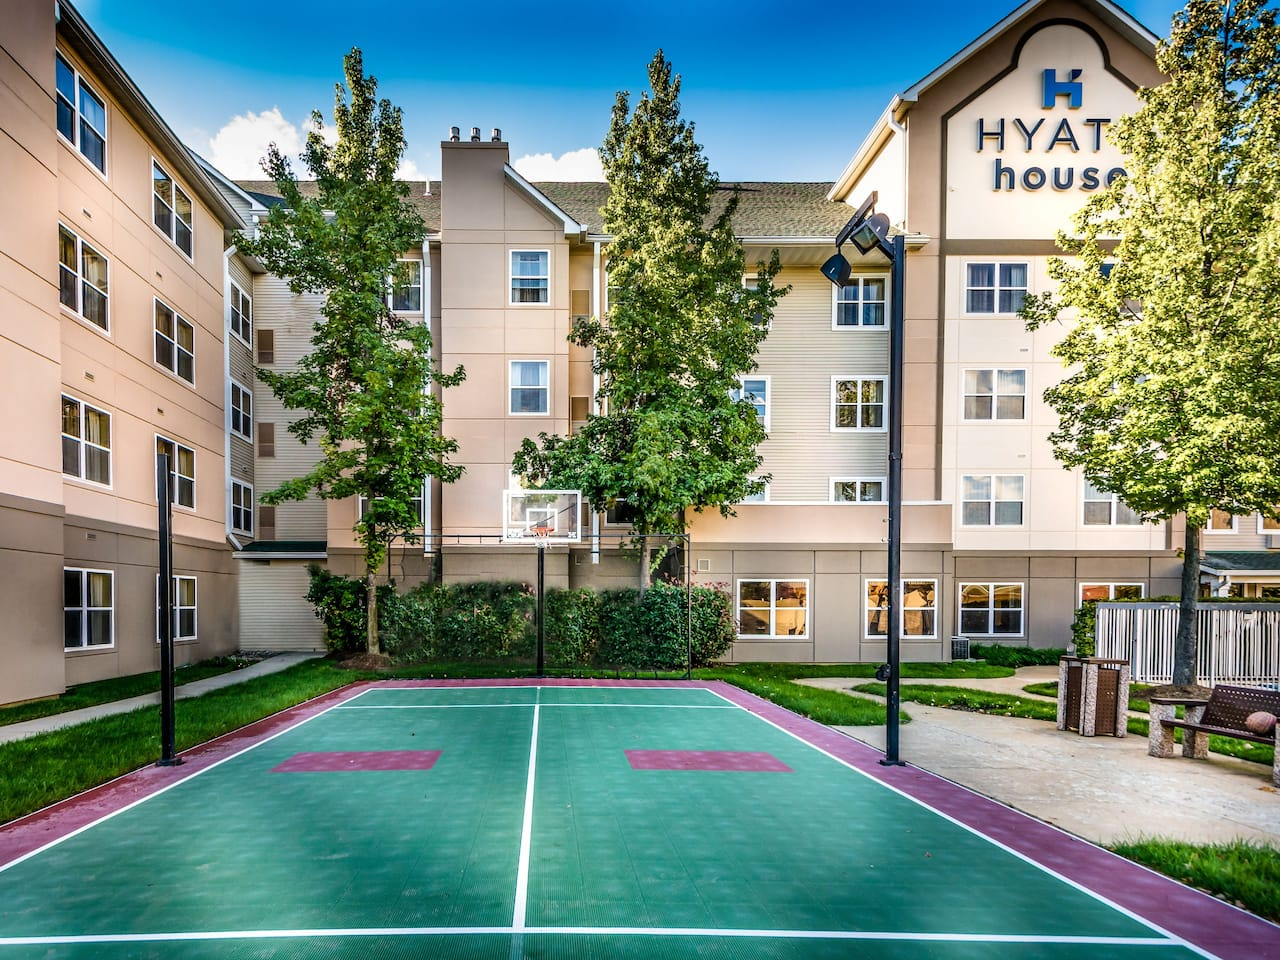 Hyatt House Sport Court